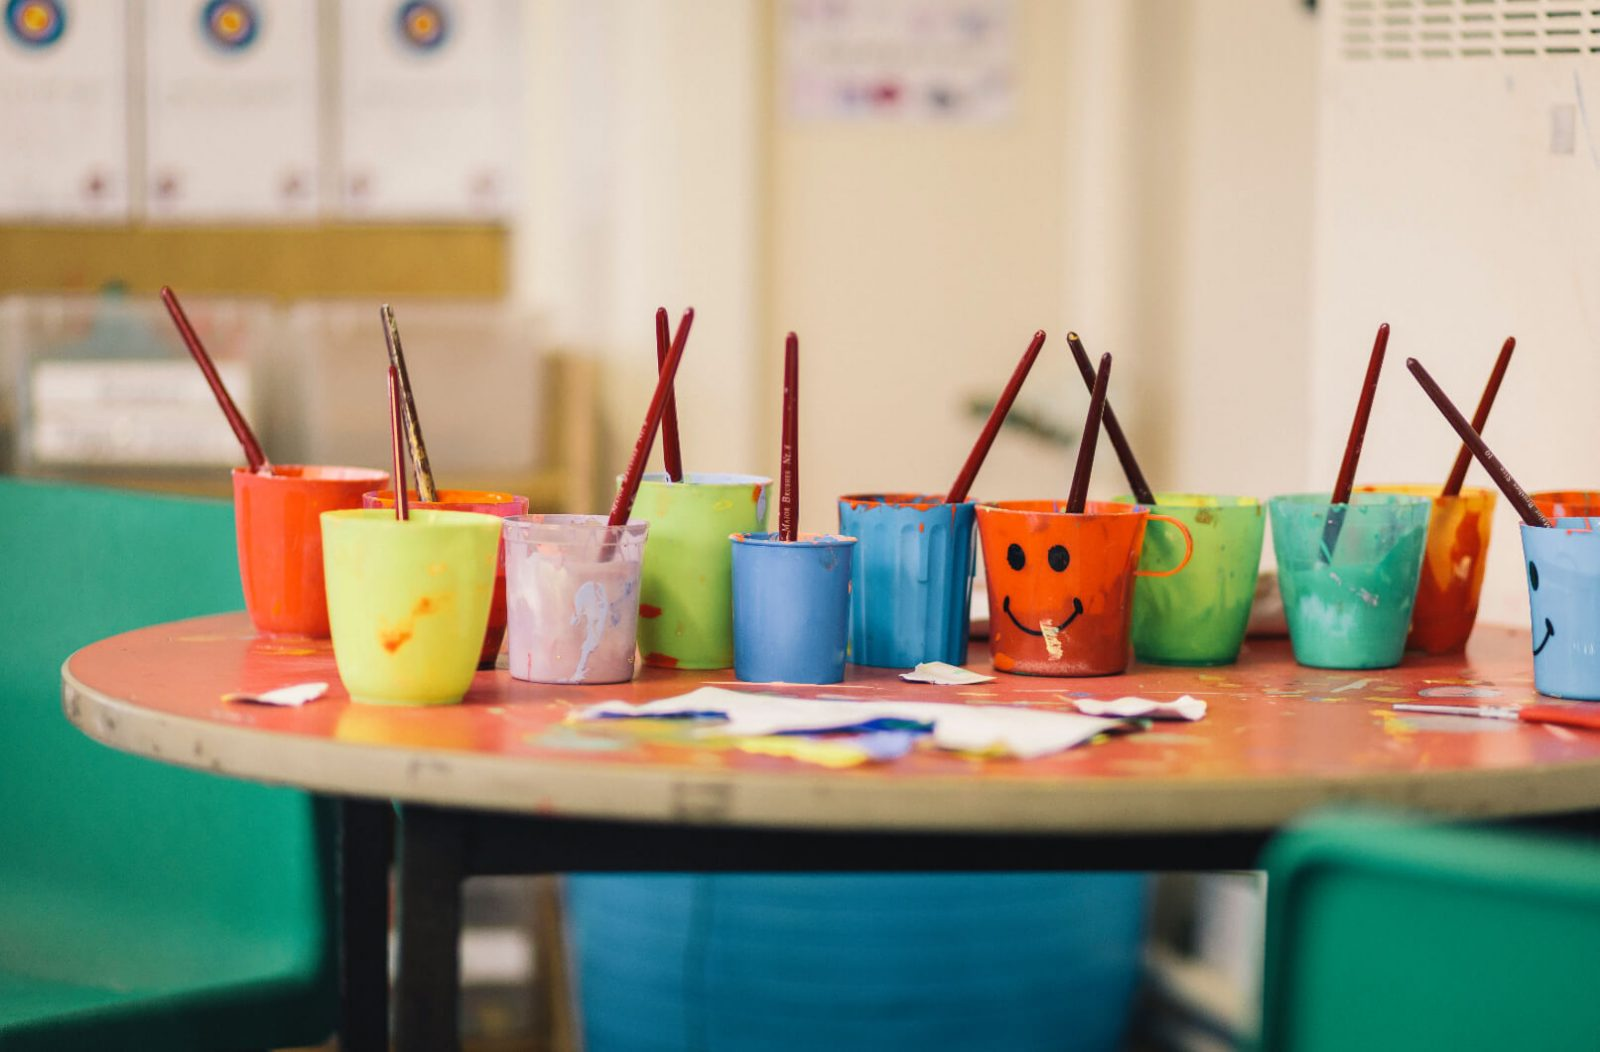 Image of pots of poster paint for creative expression in schools